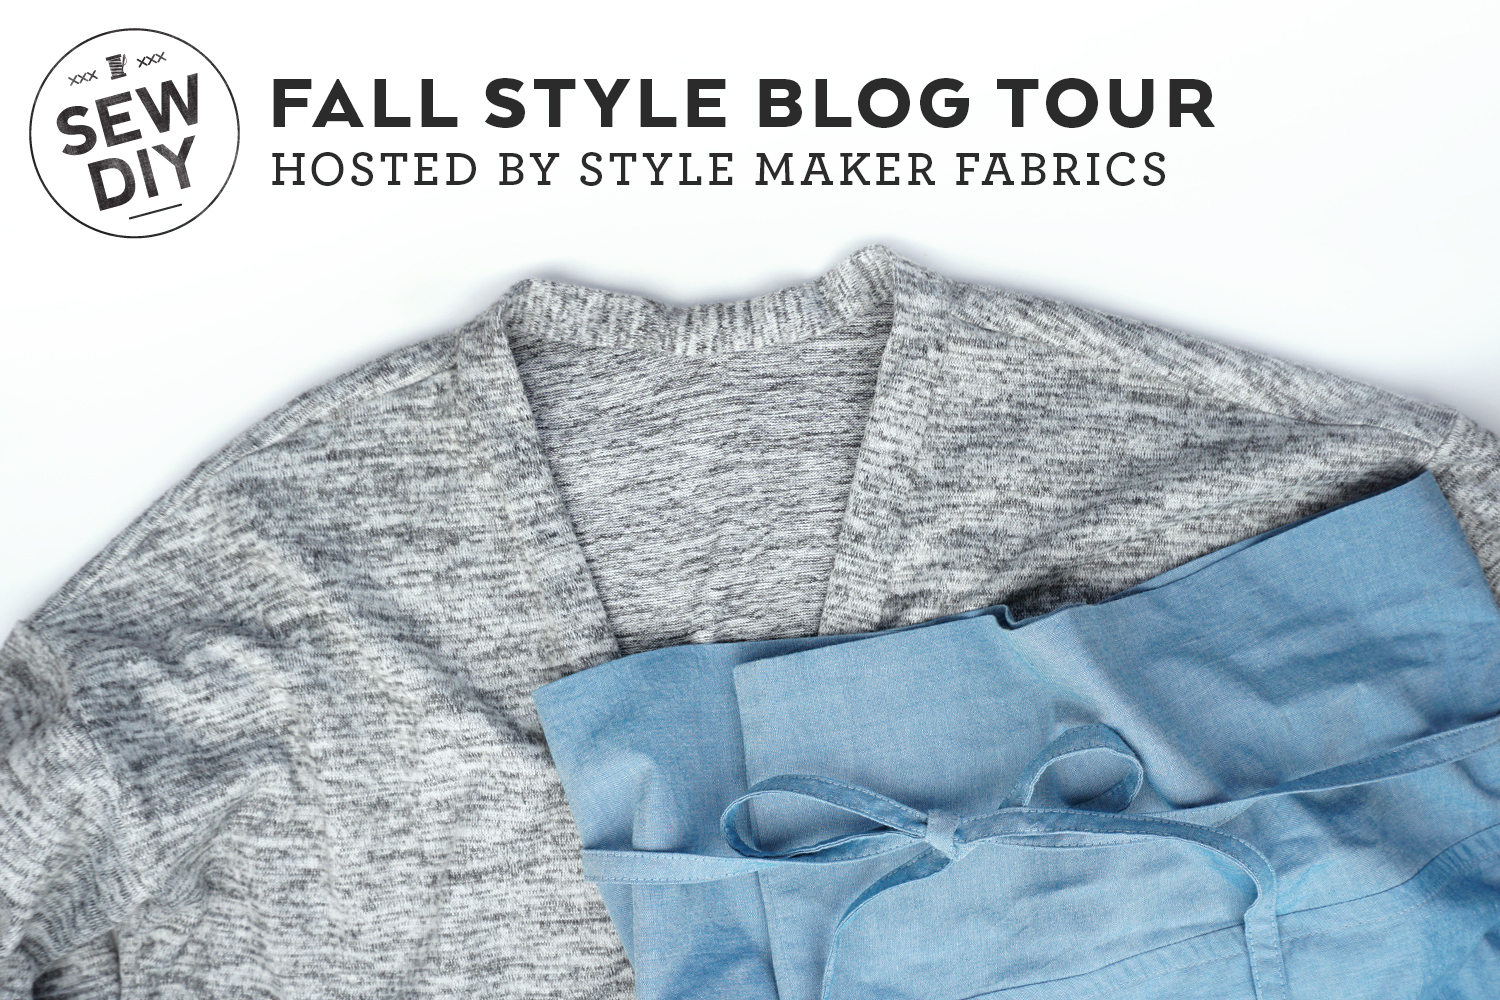 Fall Blog Tour with Style Maker Fabrics, featuring Driftless Cardigan and Nehalem Pants sewing patterns | Sew DIY